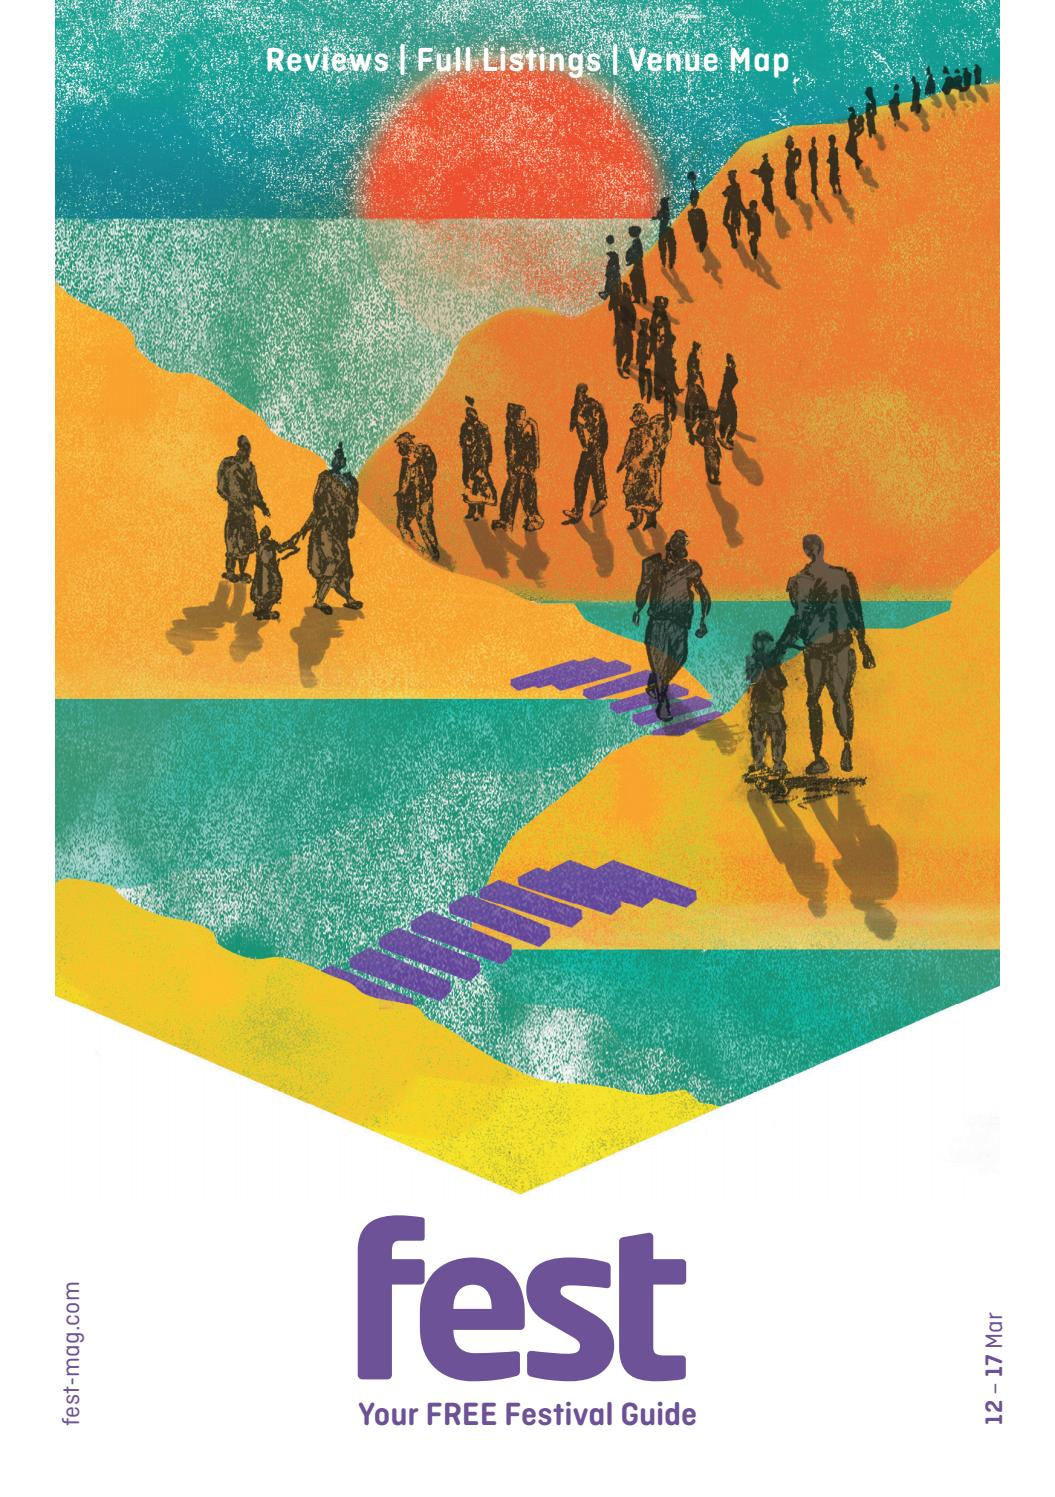 Fest Adelaide 2019 Issue 3 by Fest Magazine - issuu